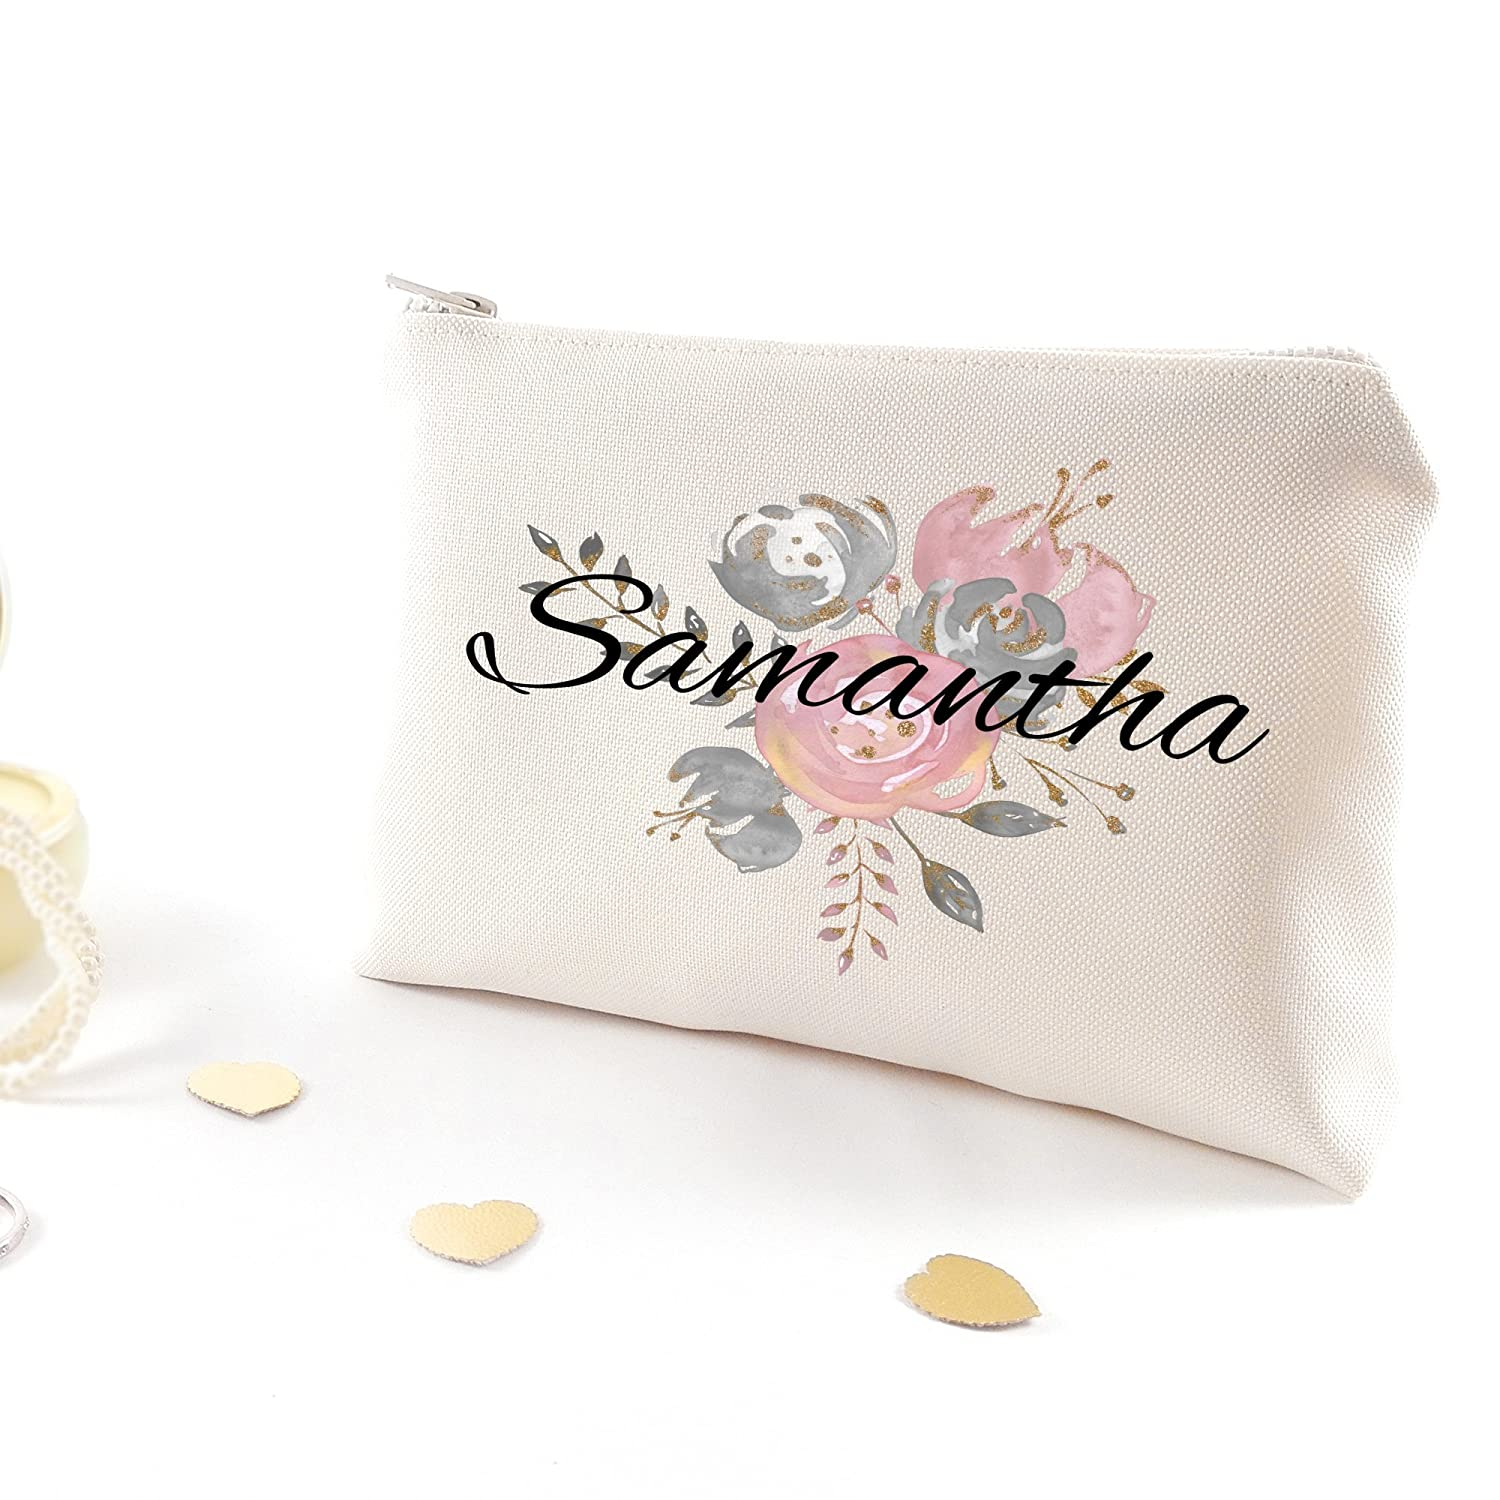 Personalized make up bag - Gift for women